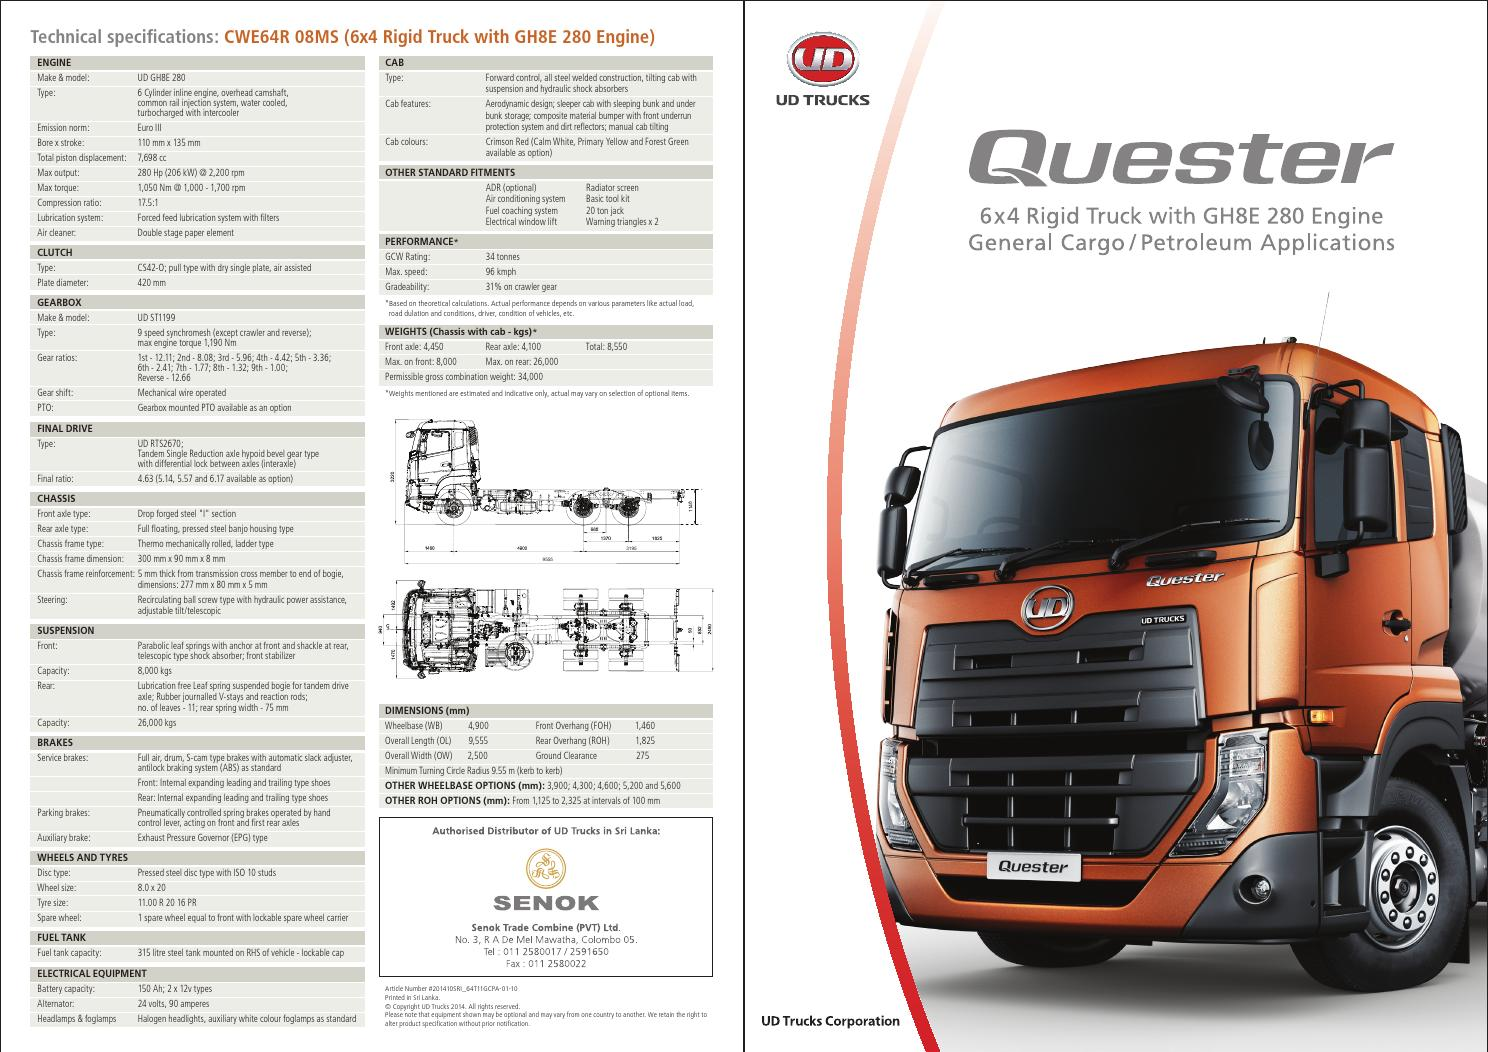 Quester Cwe Mde8 Cargo Petroleum Specification Sheet By Ud